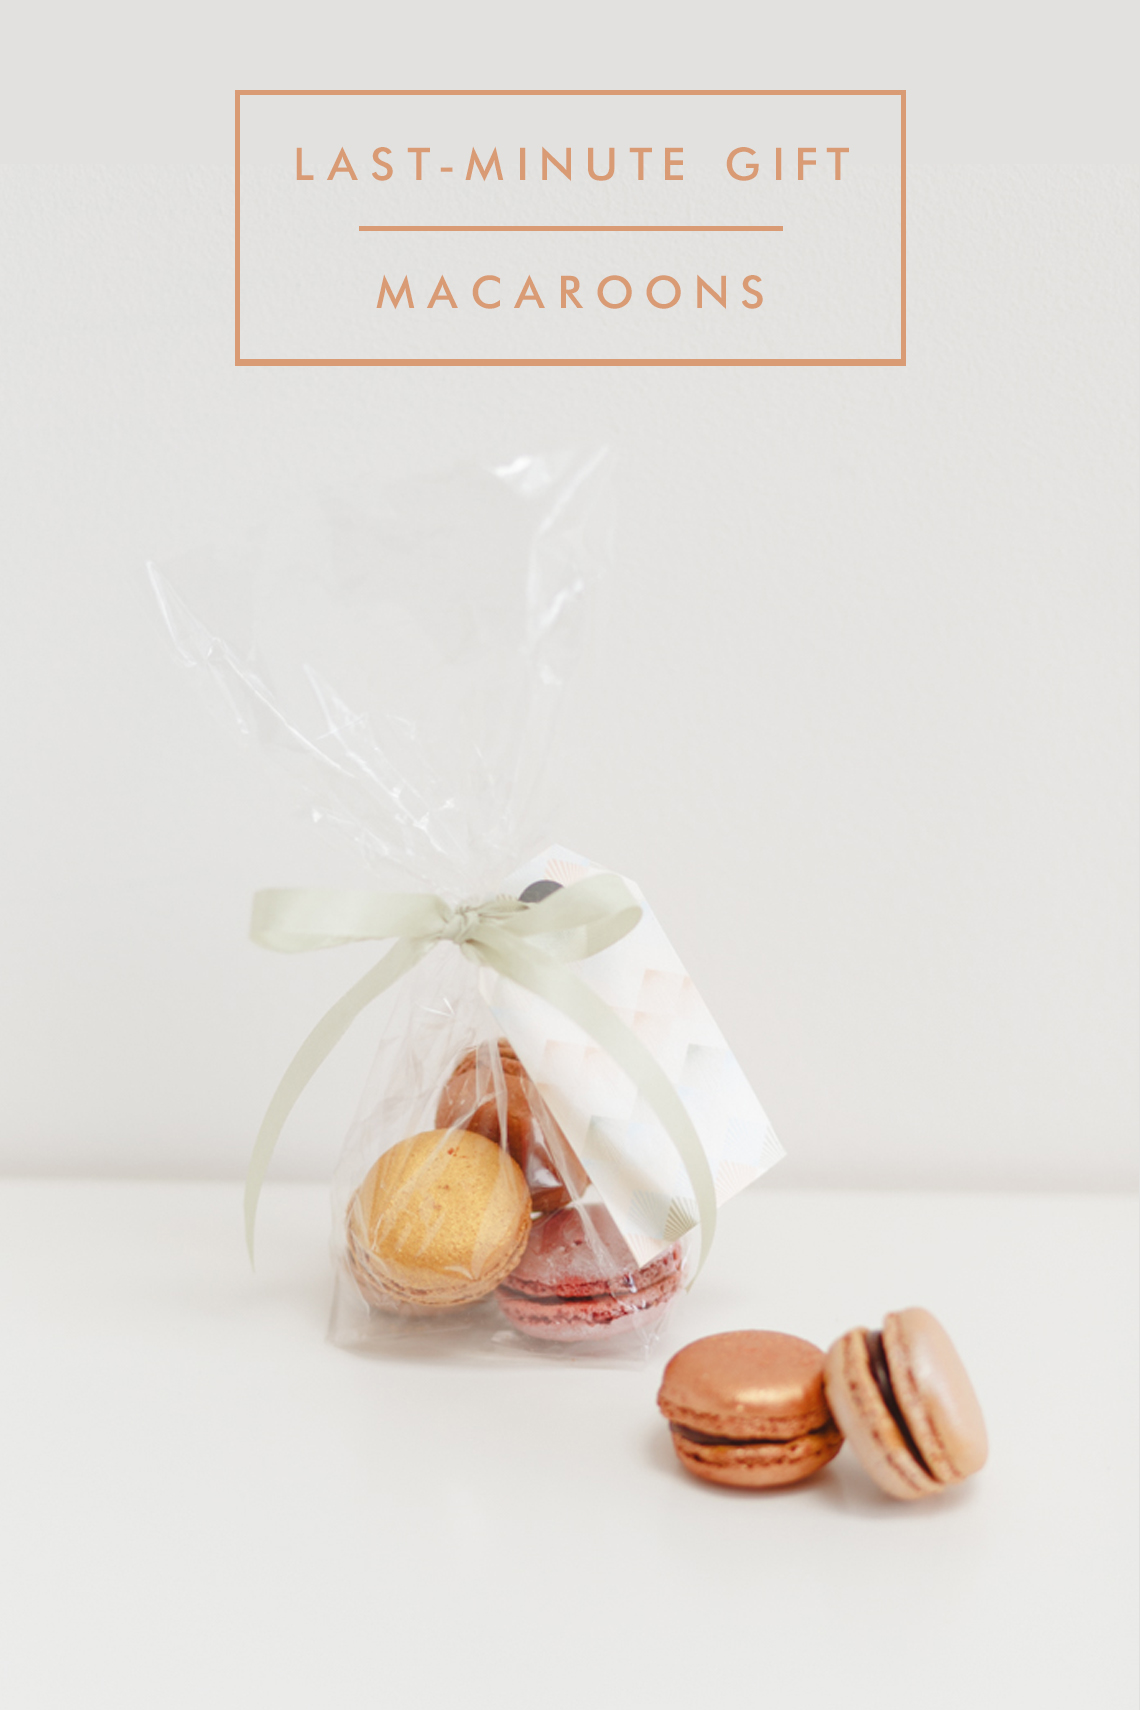 BLOVED Lifestyle Blog Christmas Gift Guide Last Minute Gifts Claire Graham Photography Macaroons